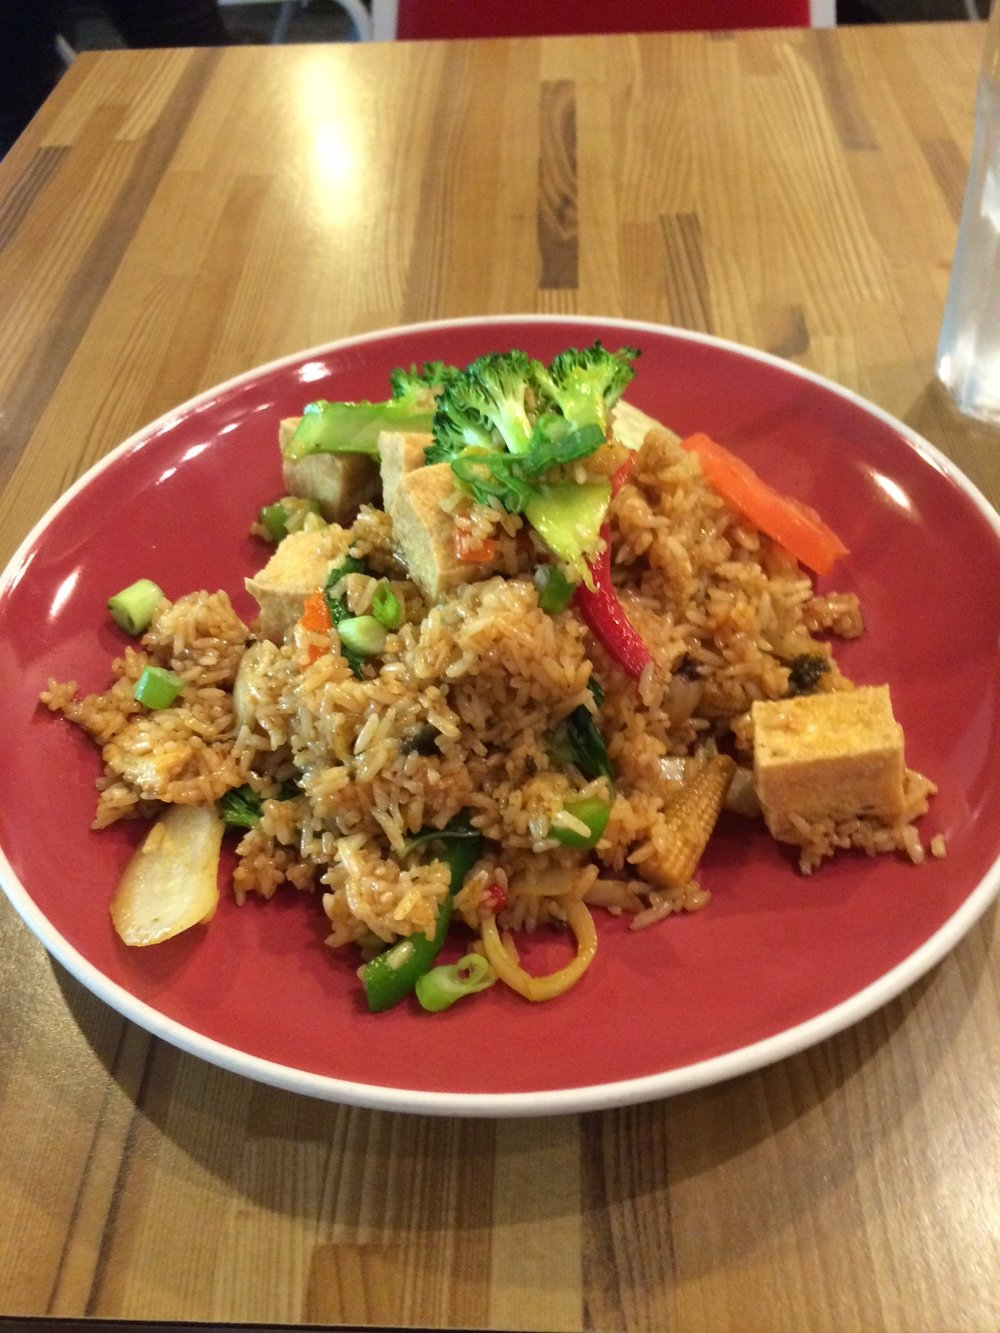 The absolutely delicious tofu spicy fried rice just didn't do it for the author, who, like an addict with a high tolerance, needs an unhealthy amount of food in his stomach just to feel normal. Photo by Dan Johnson.